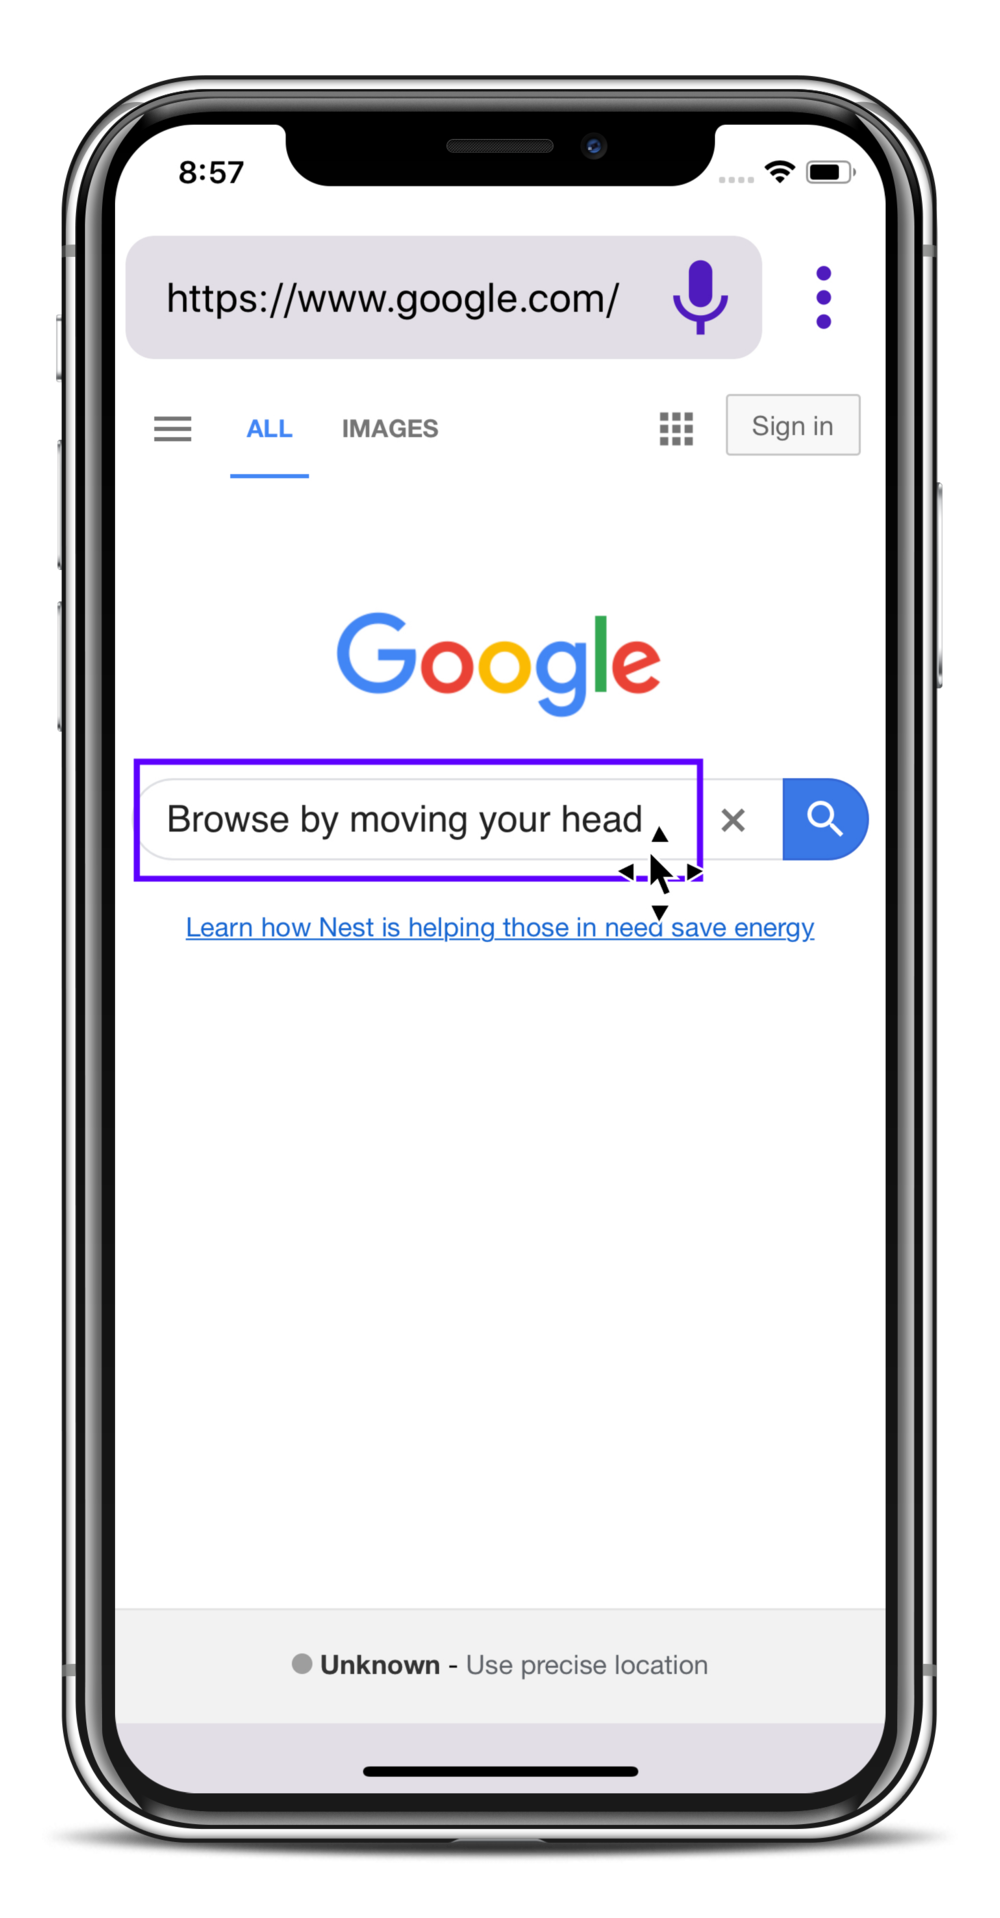 browser-iphone-x.png